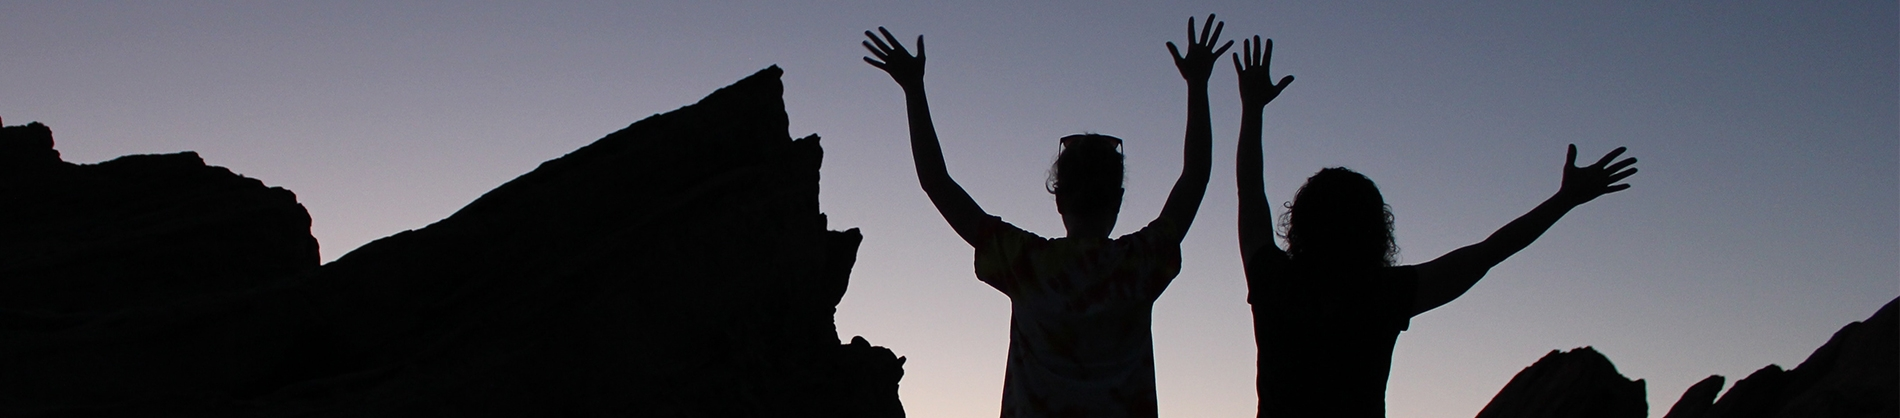 Two women with their hands up in the air